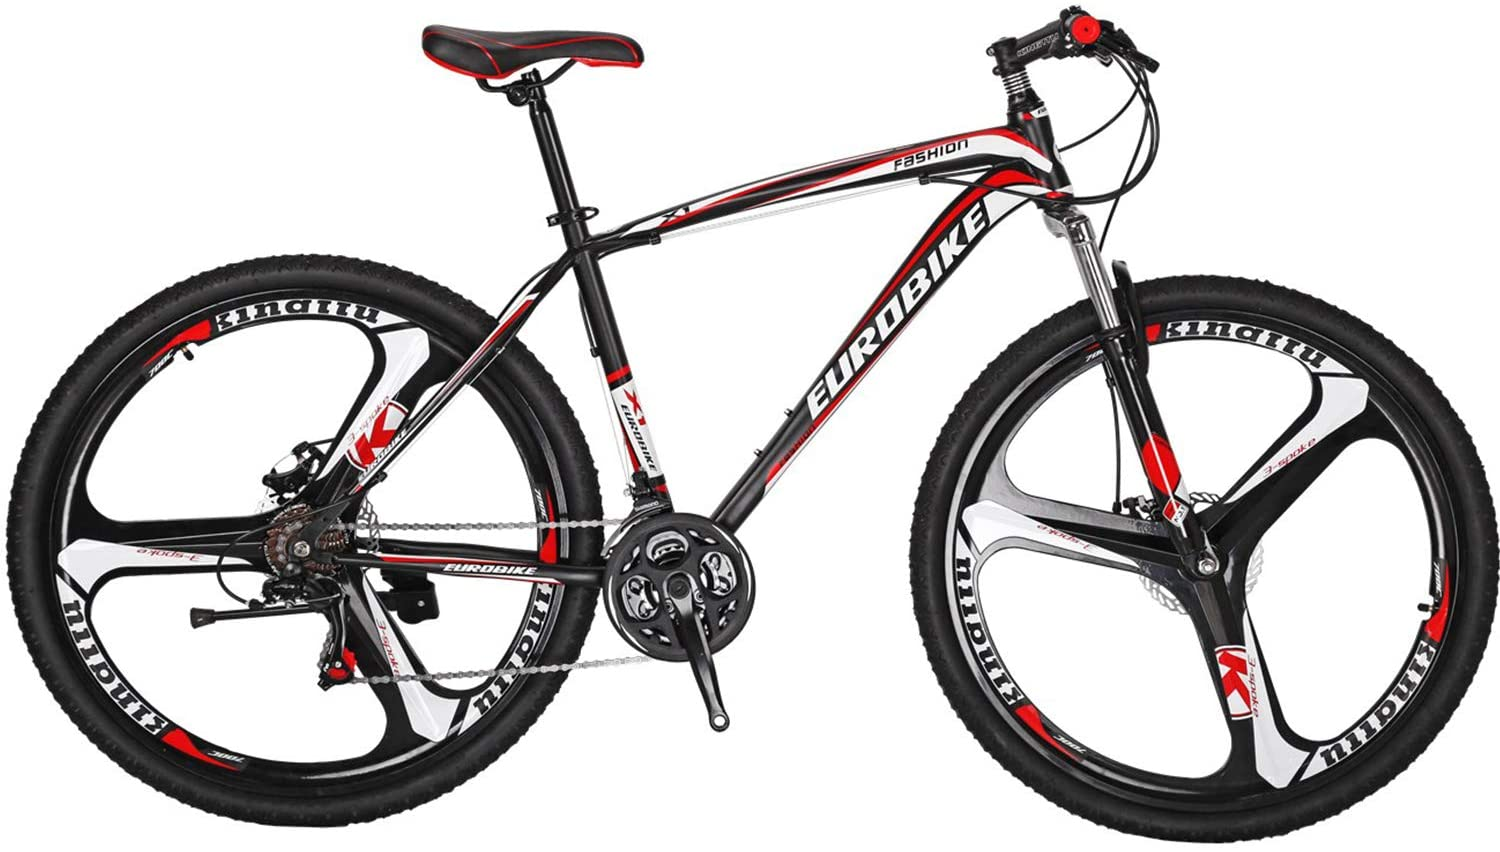 15 Best Cheap Mountain Bikes - Compare Prices & Features